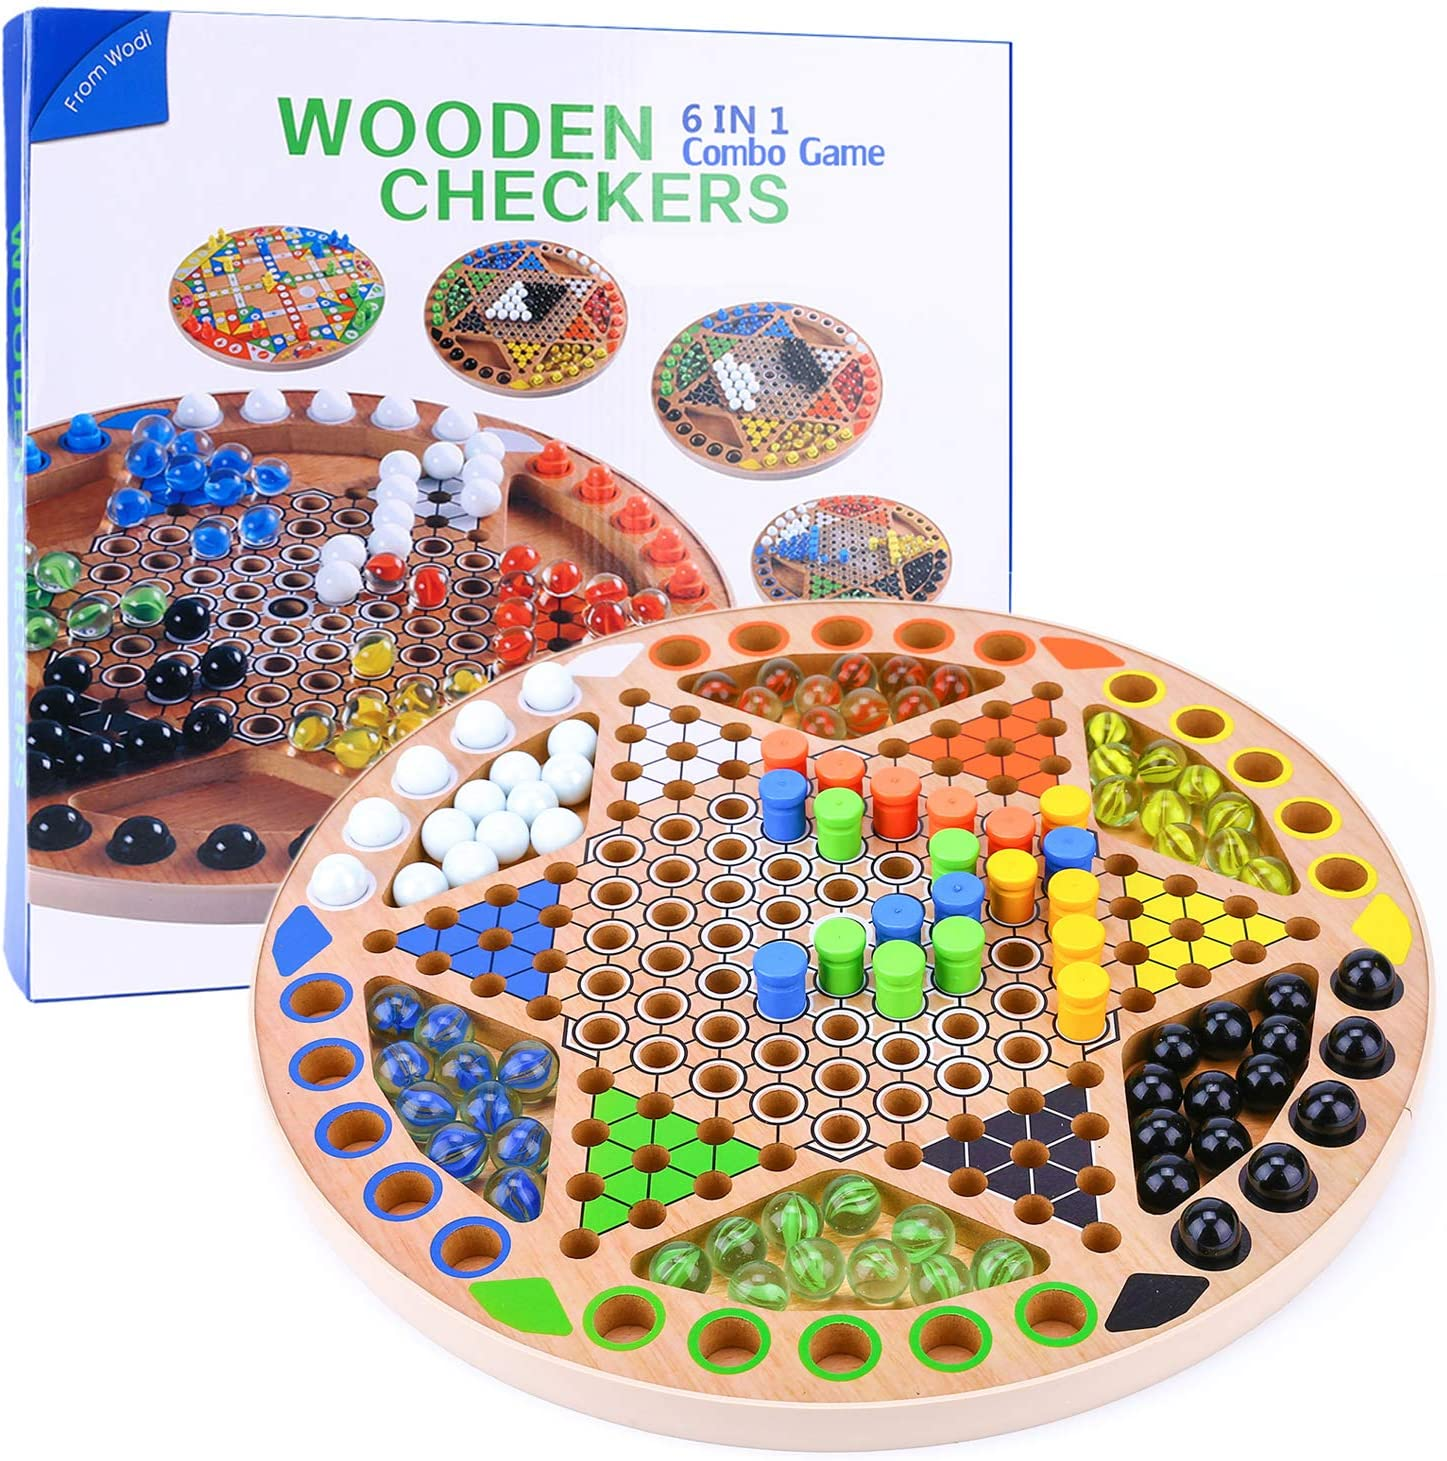 Chinese Checkers 6 New products, world's highest quality popular! in 1 Attention brand Combo Game inch 13 G Board Wooden Family